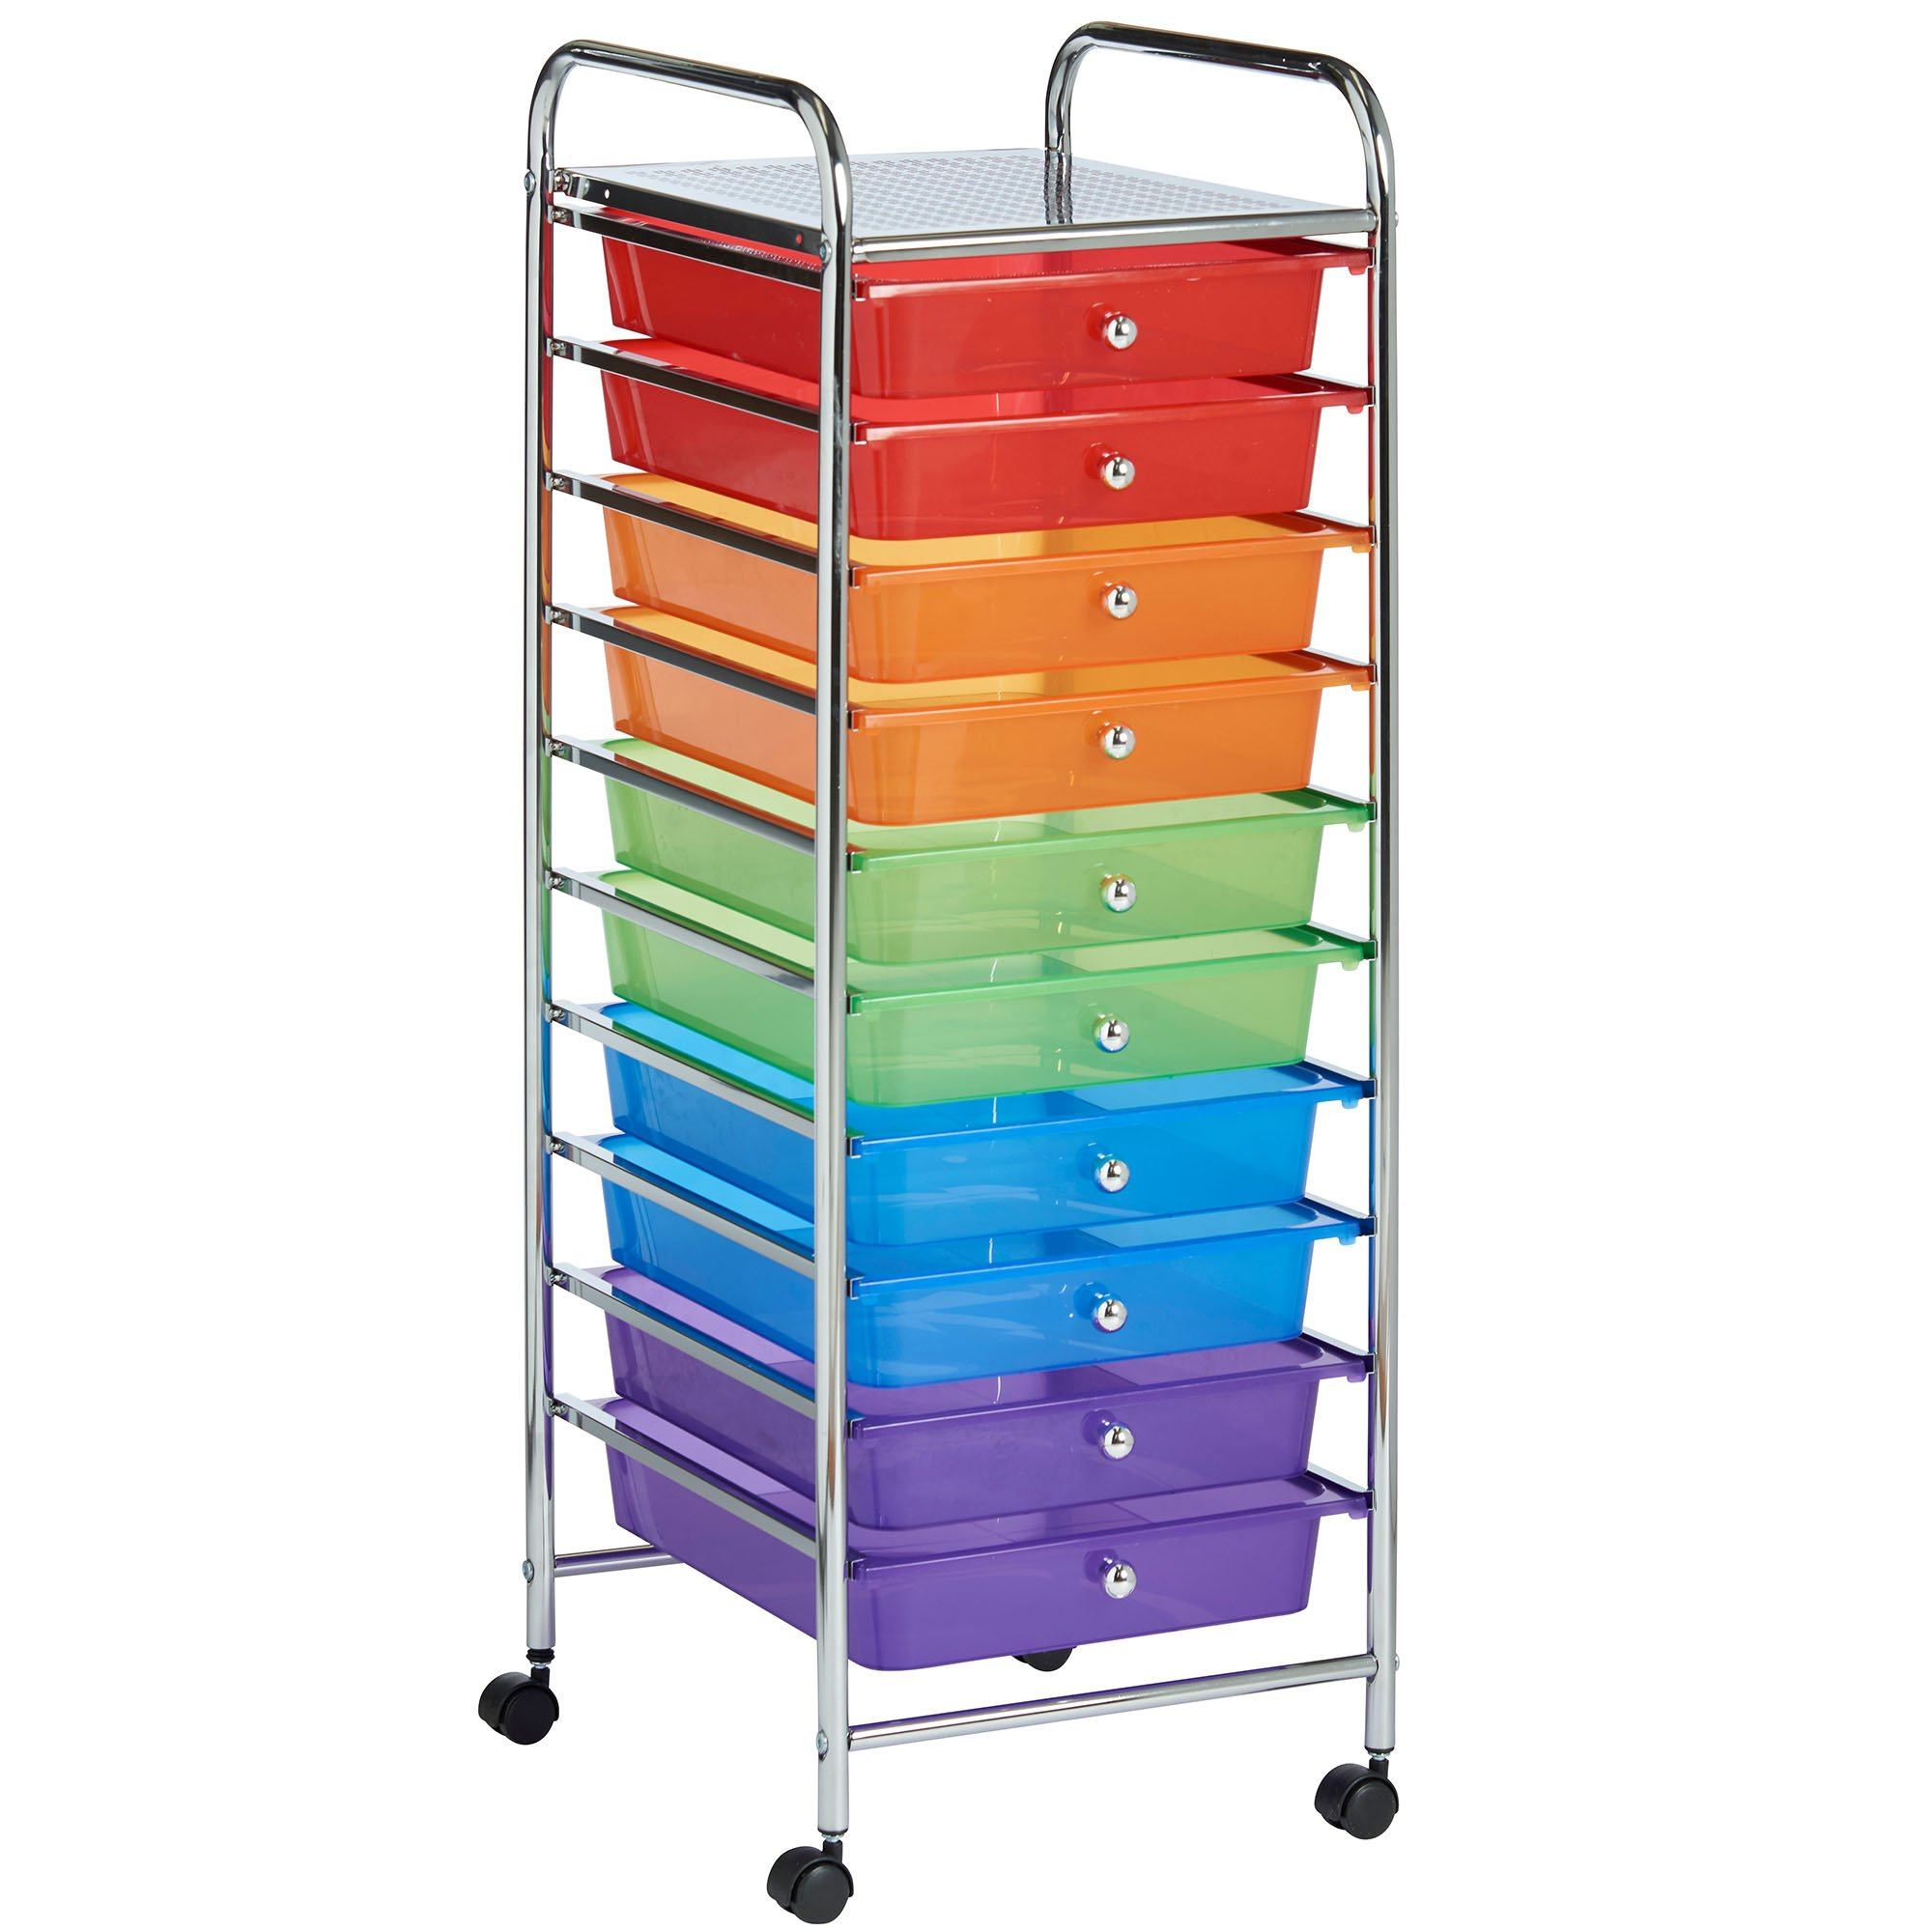 VonHaus 10 Drawer Multi-Coloured Mobile Storage Trolley for Home u0026 Office  sc 1 st  Amazon UK & Storage Drawers for Crafts: Amazon.co.uk